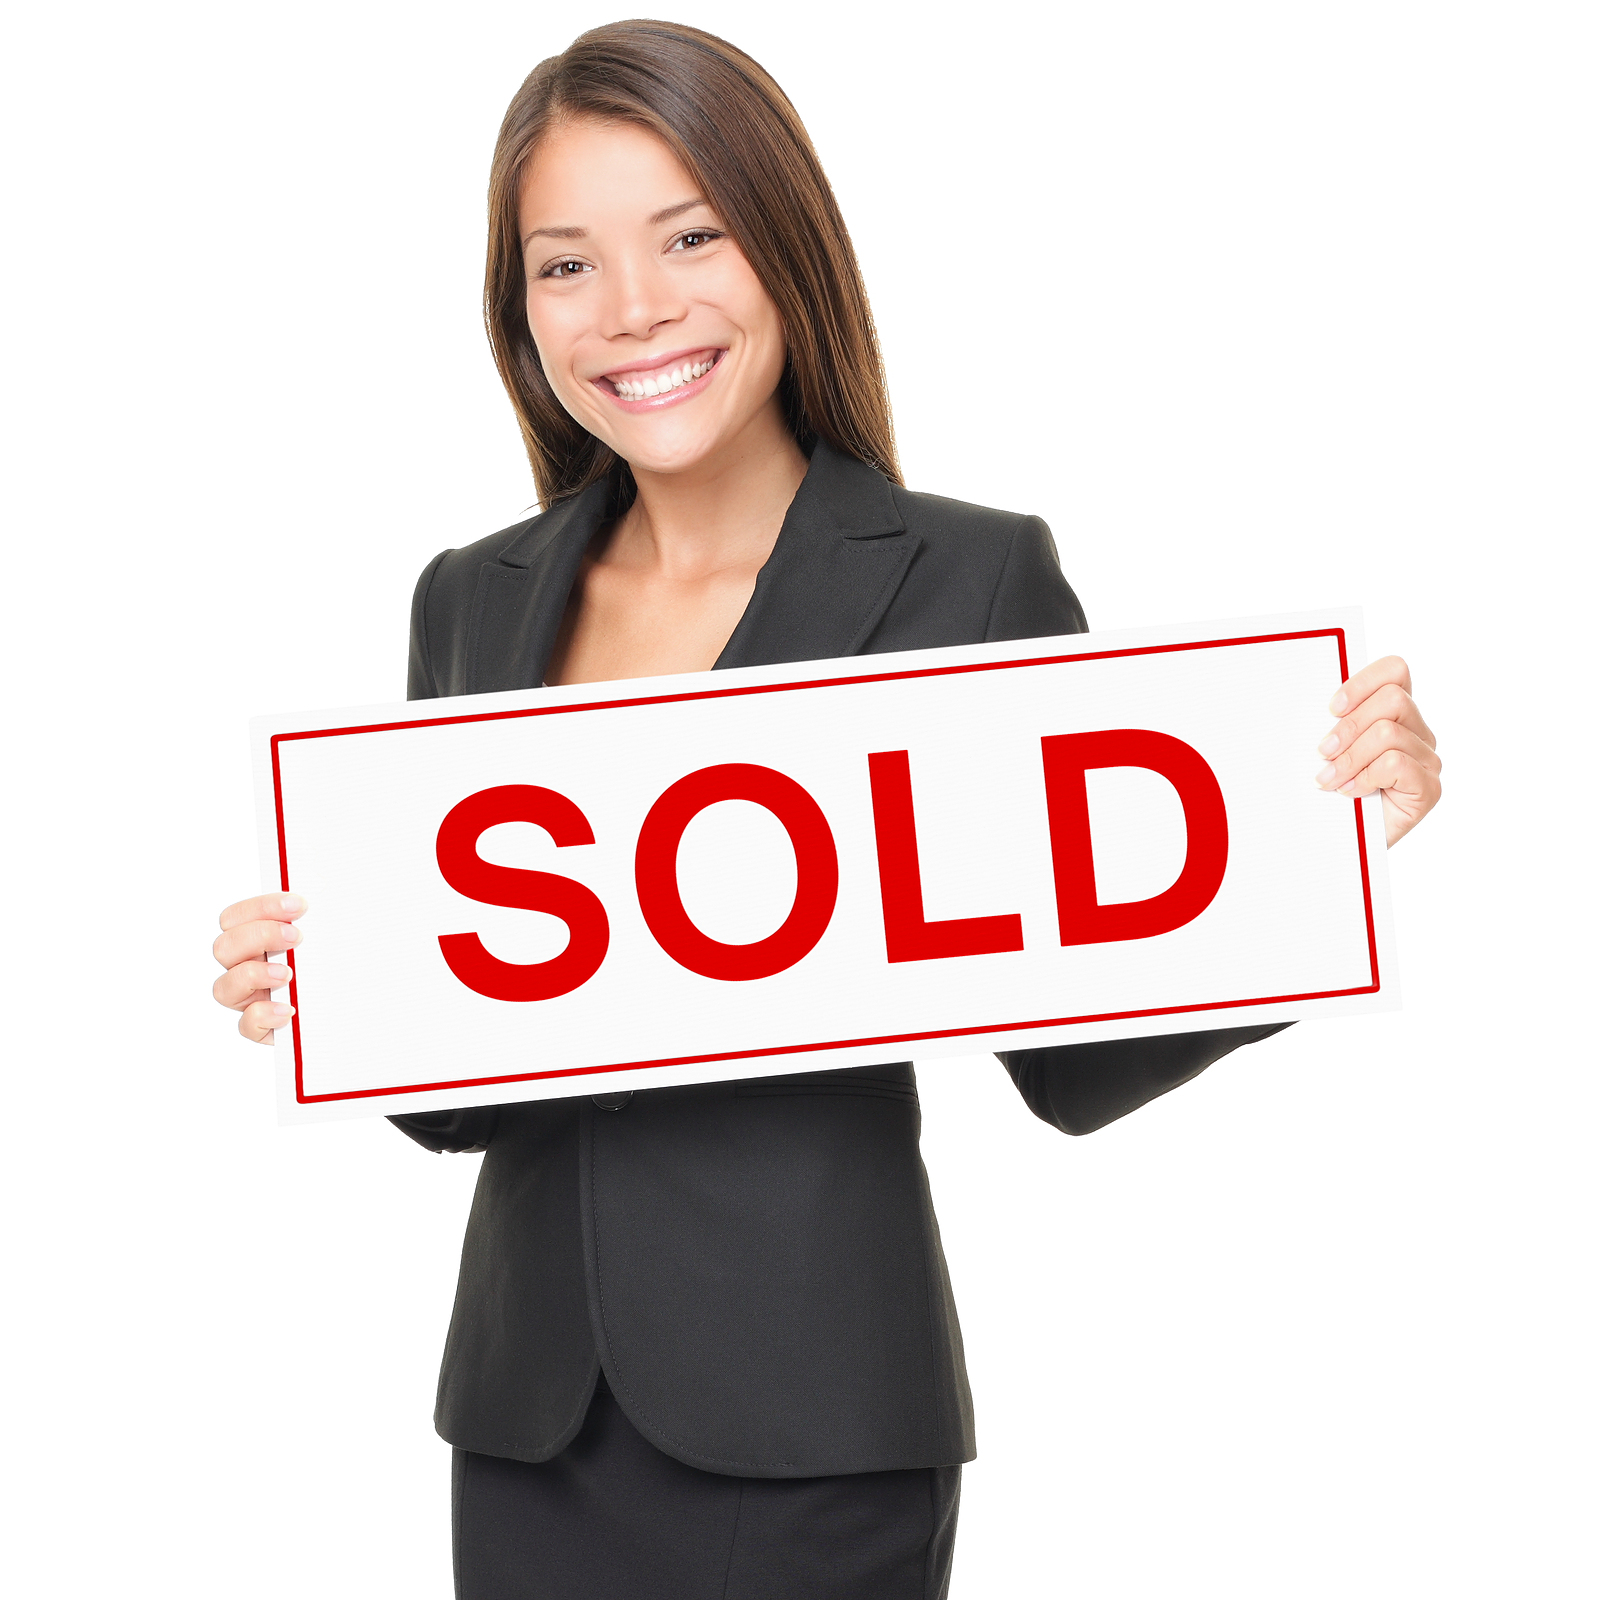 bigstock_Real_estate_agent_holding_sold_15707957